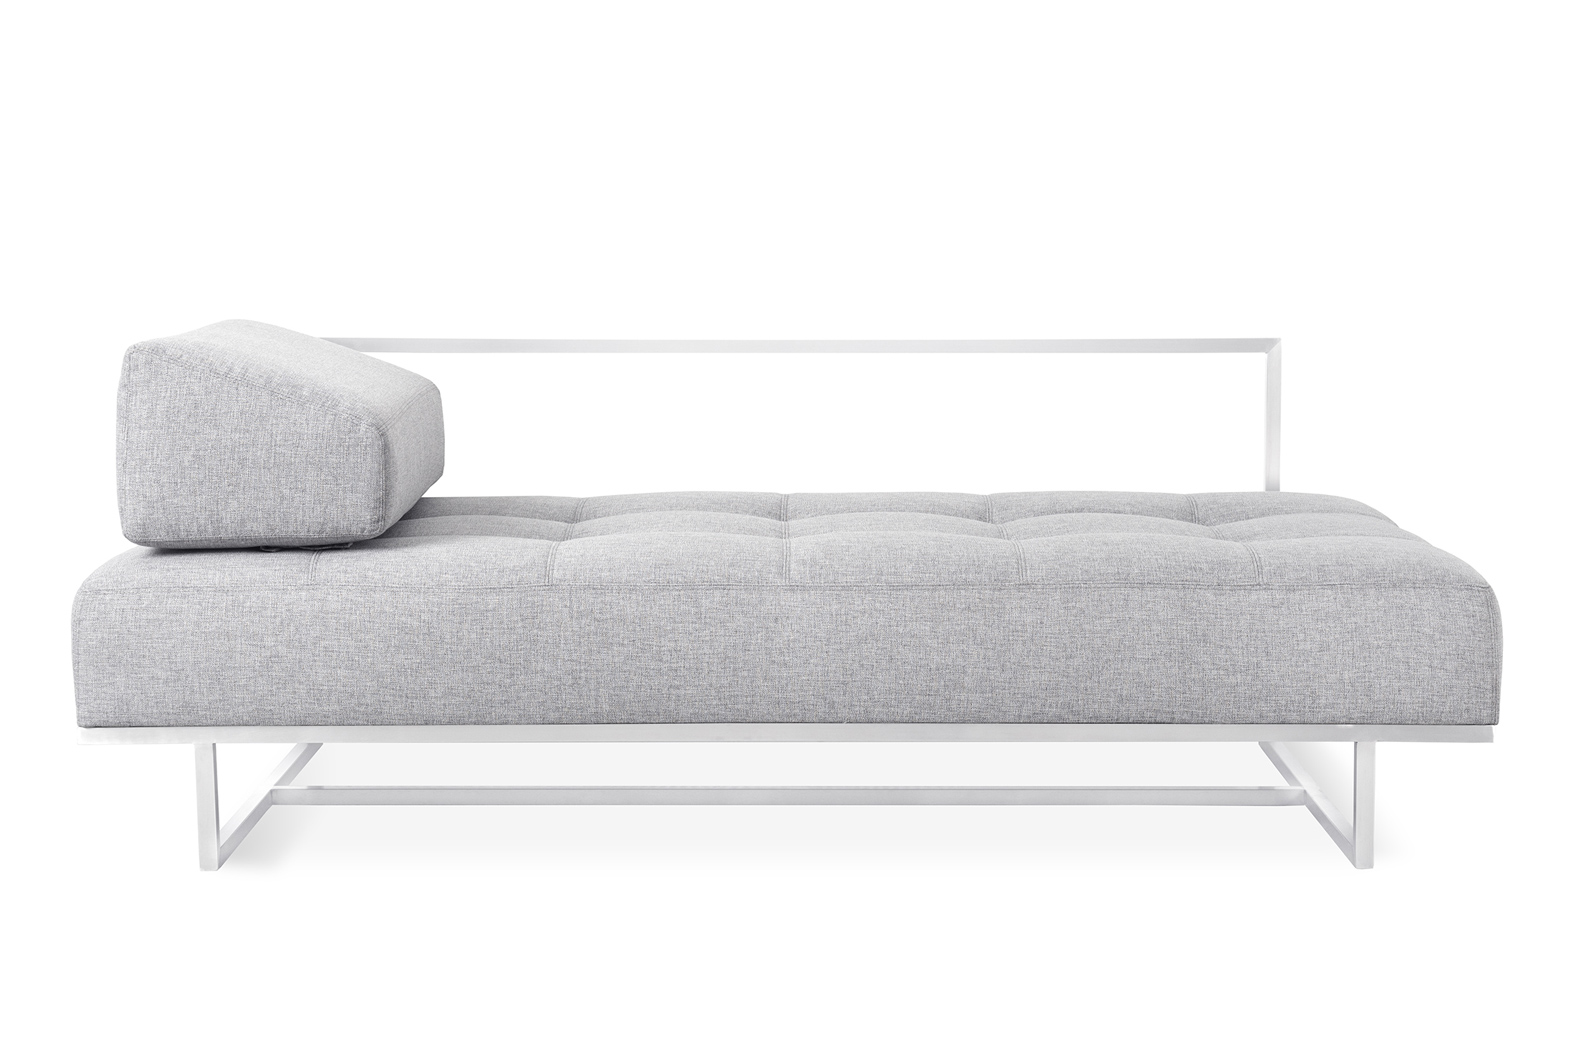 Key Item Daybeds The Trend Curve